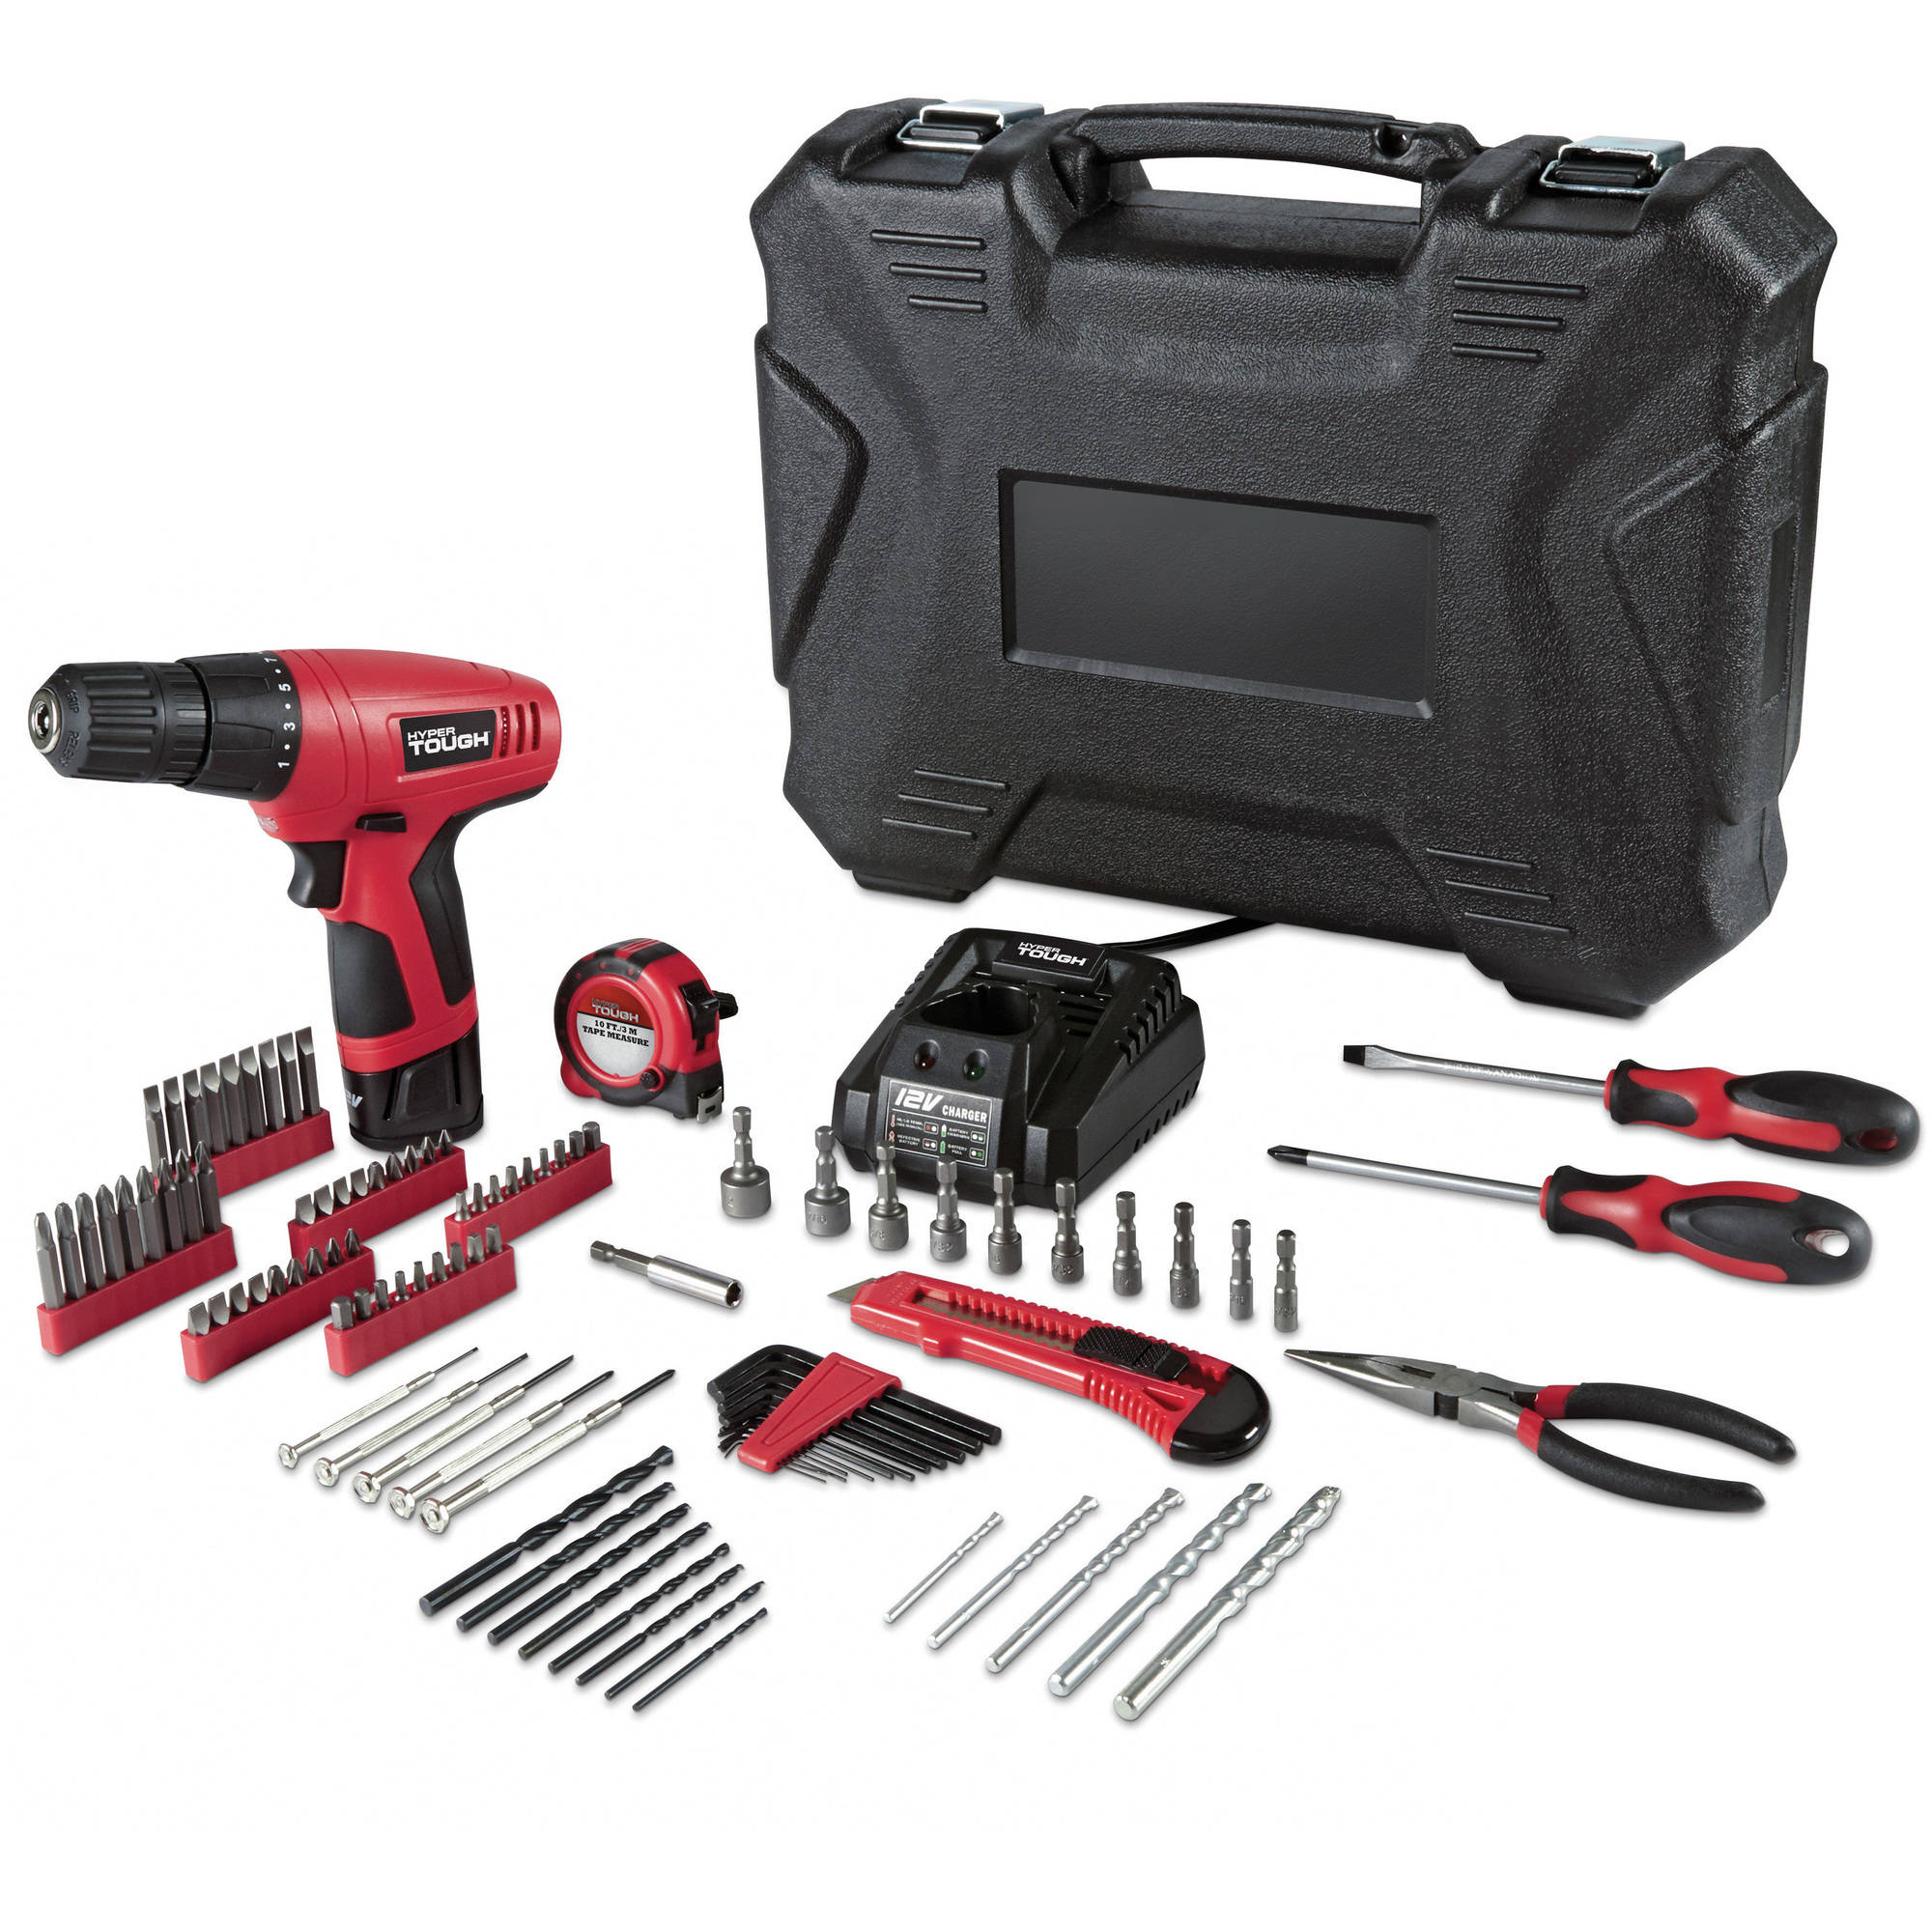 Hyper Tough 12Volt Cordless Lithium-Ion Drill/Driver with 100-pc. Project Kit